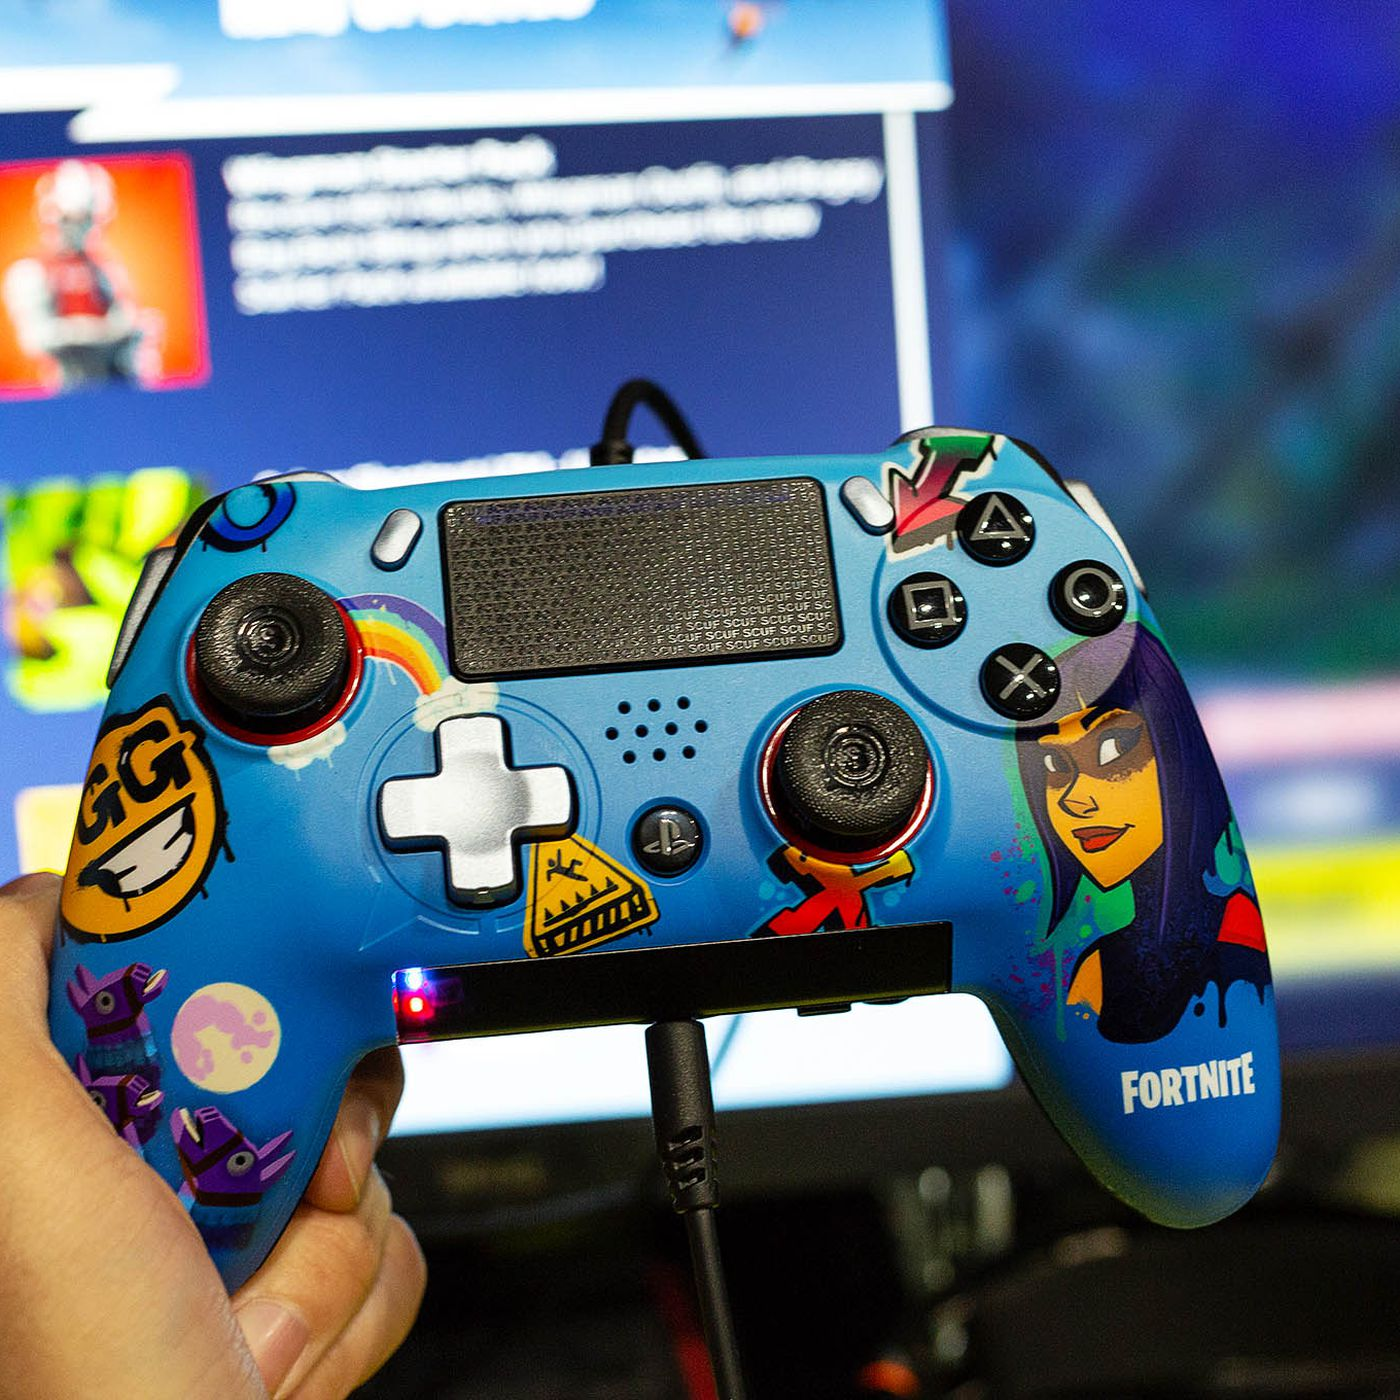 The Scuf Vantage is a Fortnite player's dream PS4 controller